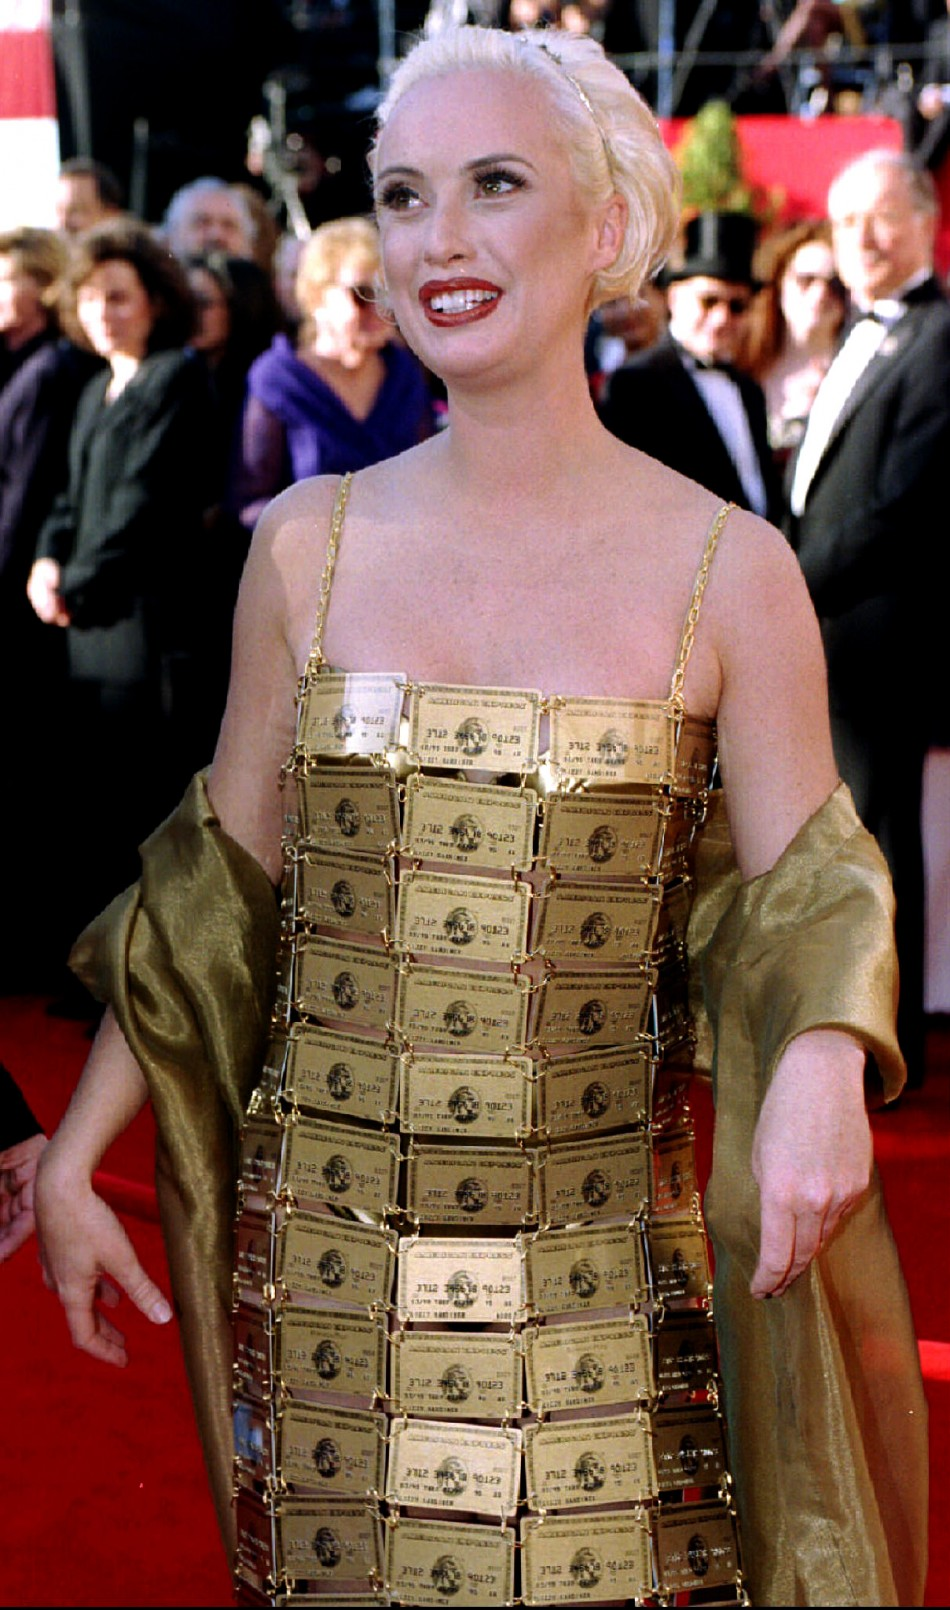 oscars 2013 worst dressed celebrities in academy awards